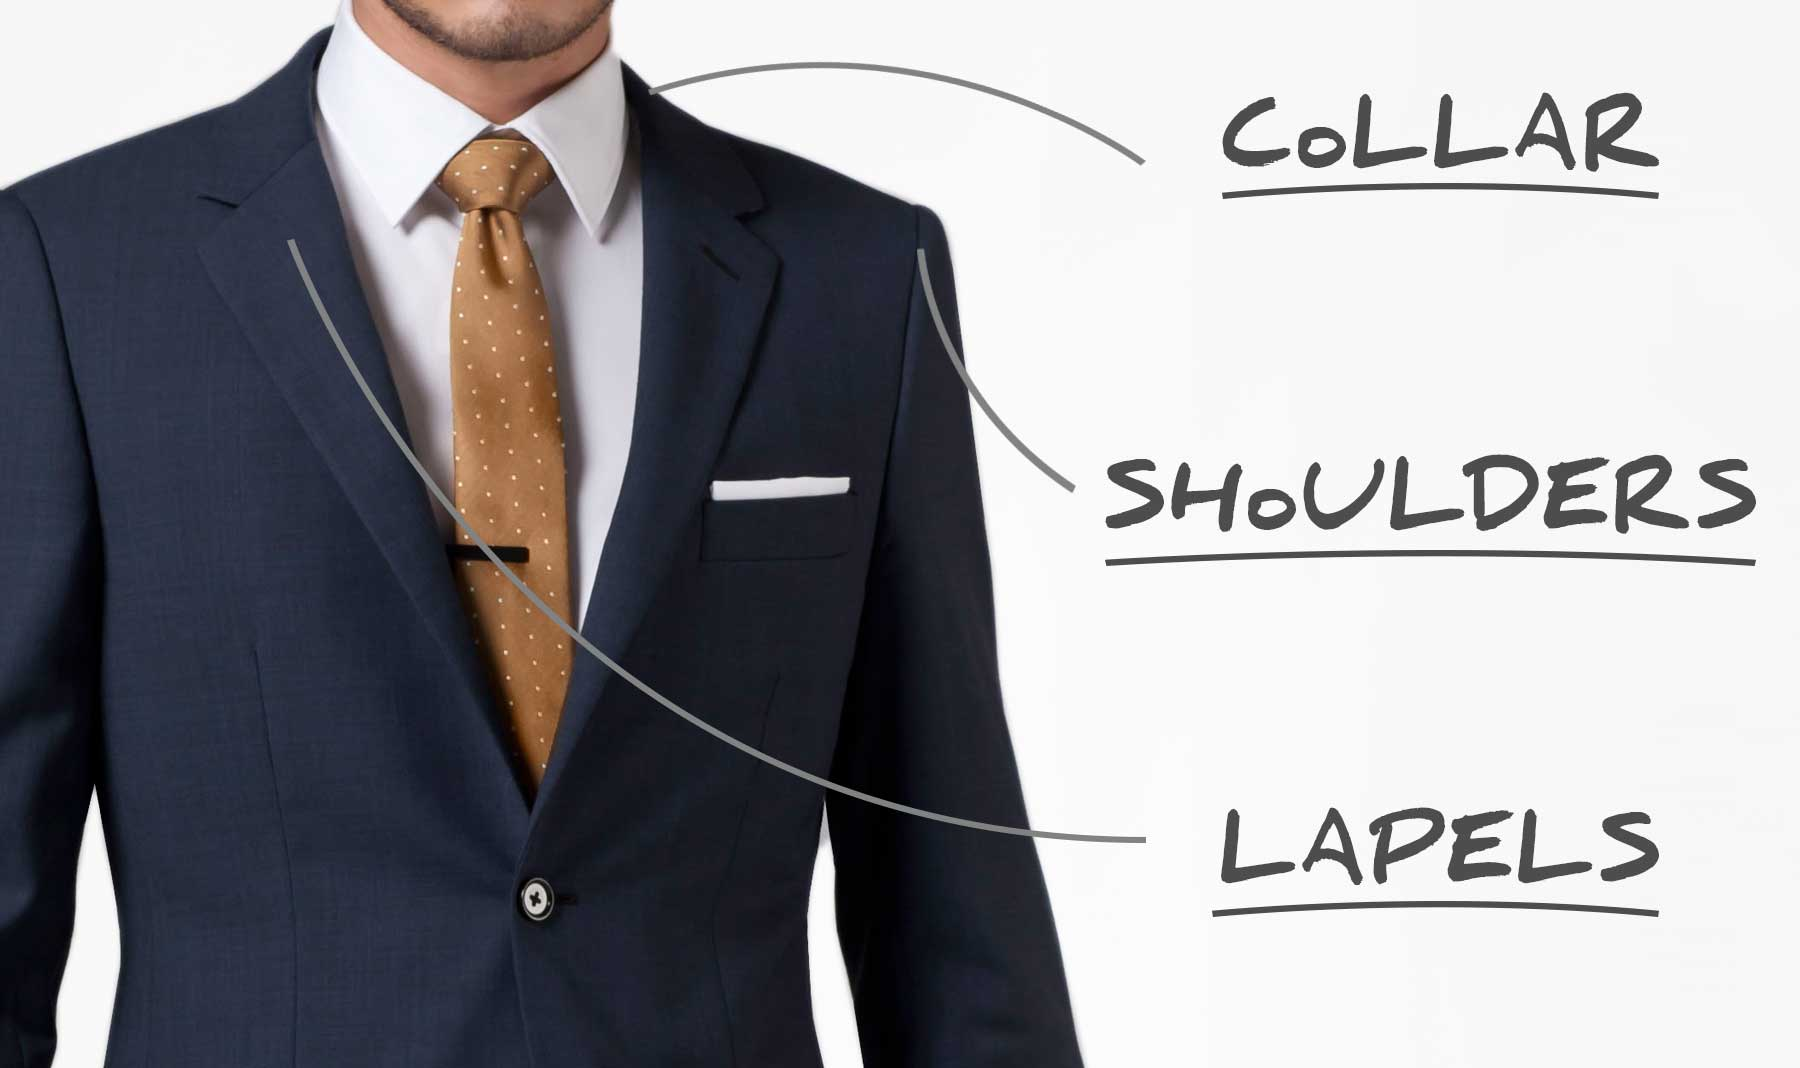 How Your Suit Should Fit: Collar, Shoulders, Lapels